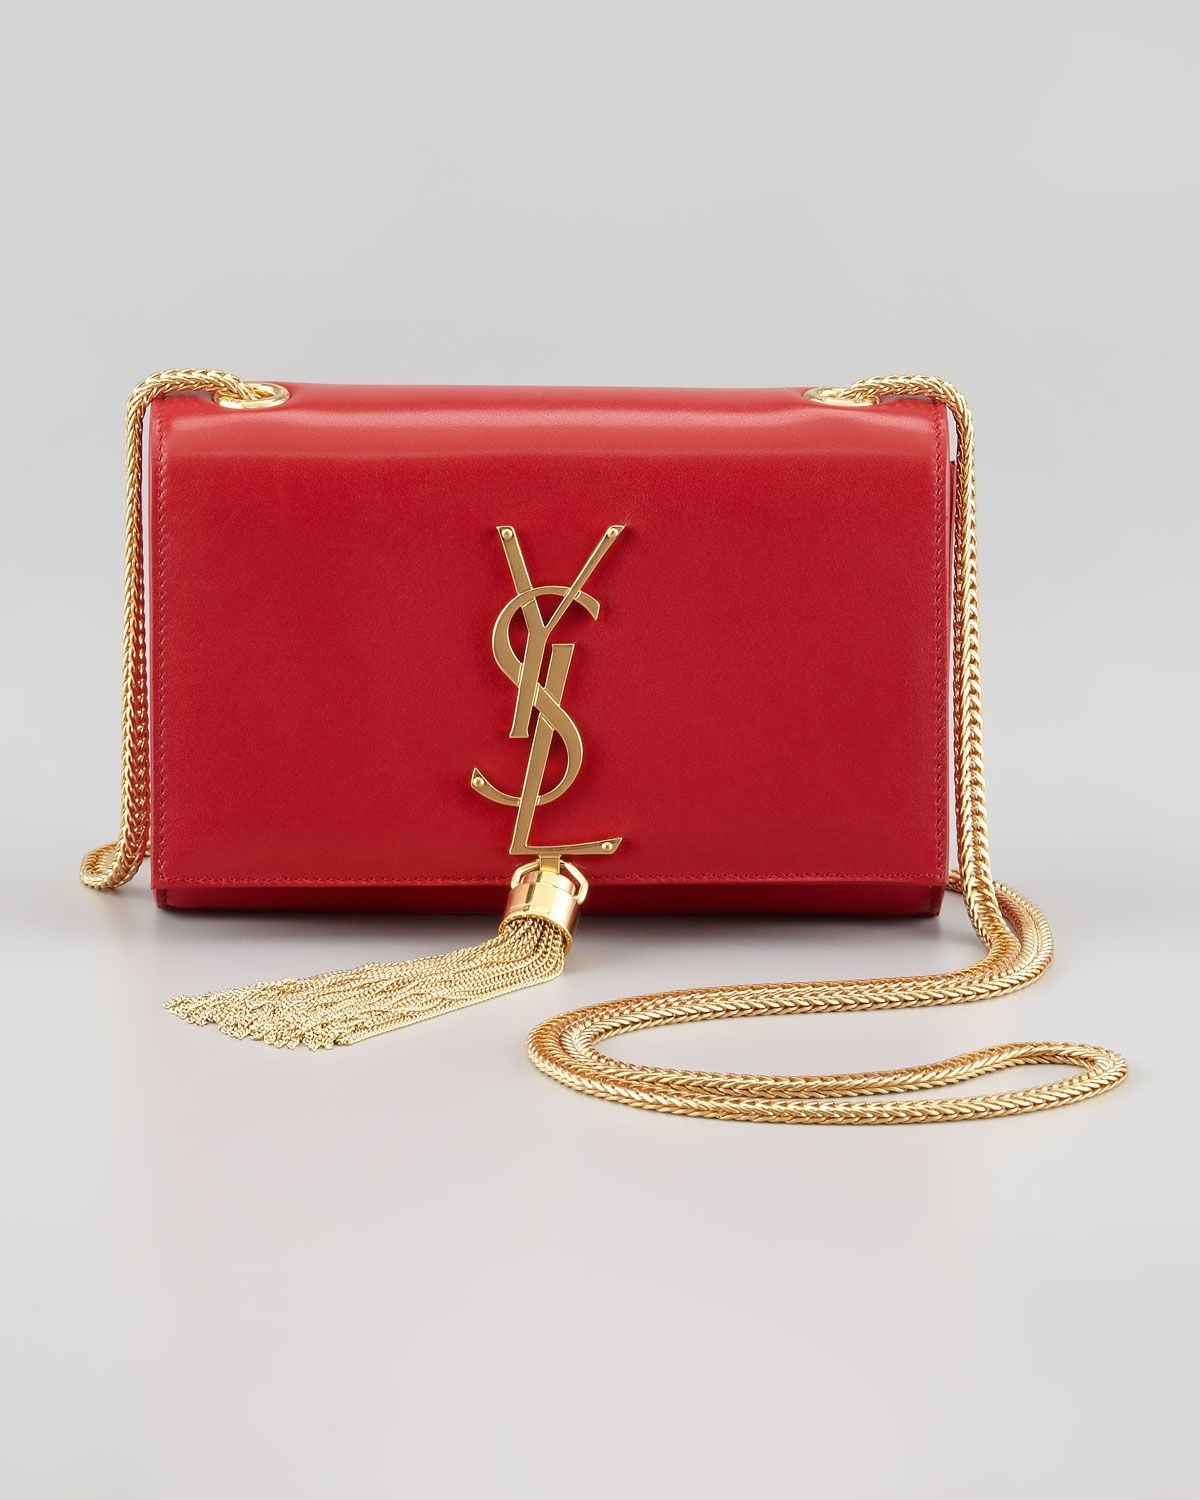 c2e43d5654 Saint Laurent Cassandre Small Tassel Crossbody Bag, Red - Neiman Marcus